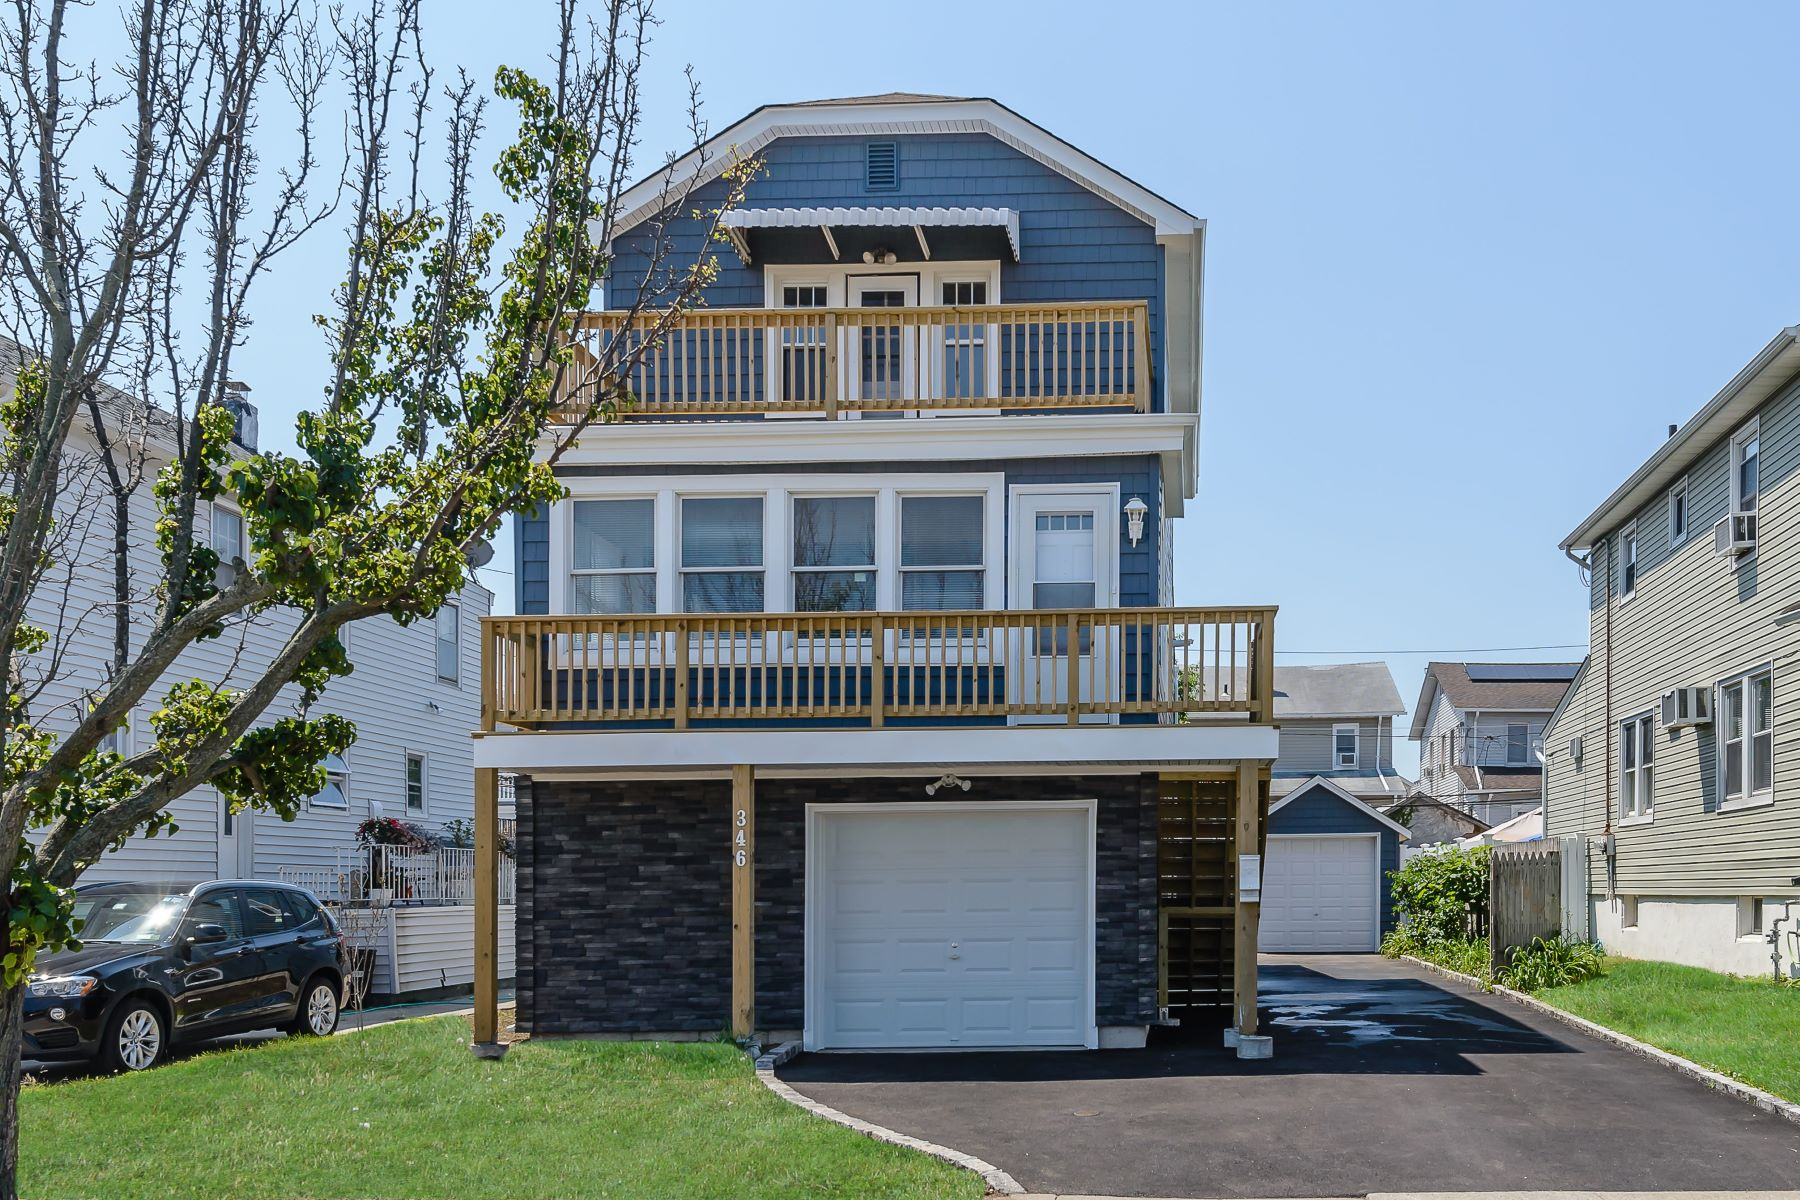 Multi-Family Home for Sale at 346 West Hudson St , Long Beach, NY 11561 346 West Hudson St Long Beach, New York 11561 United States